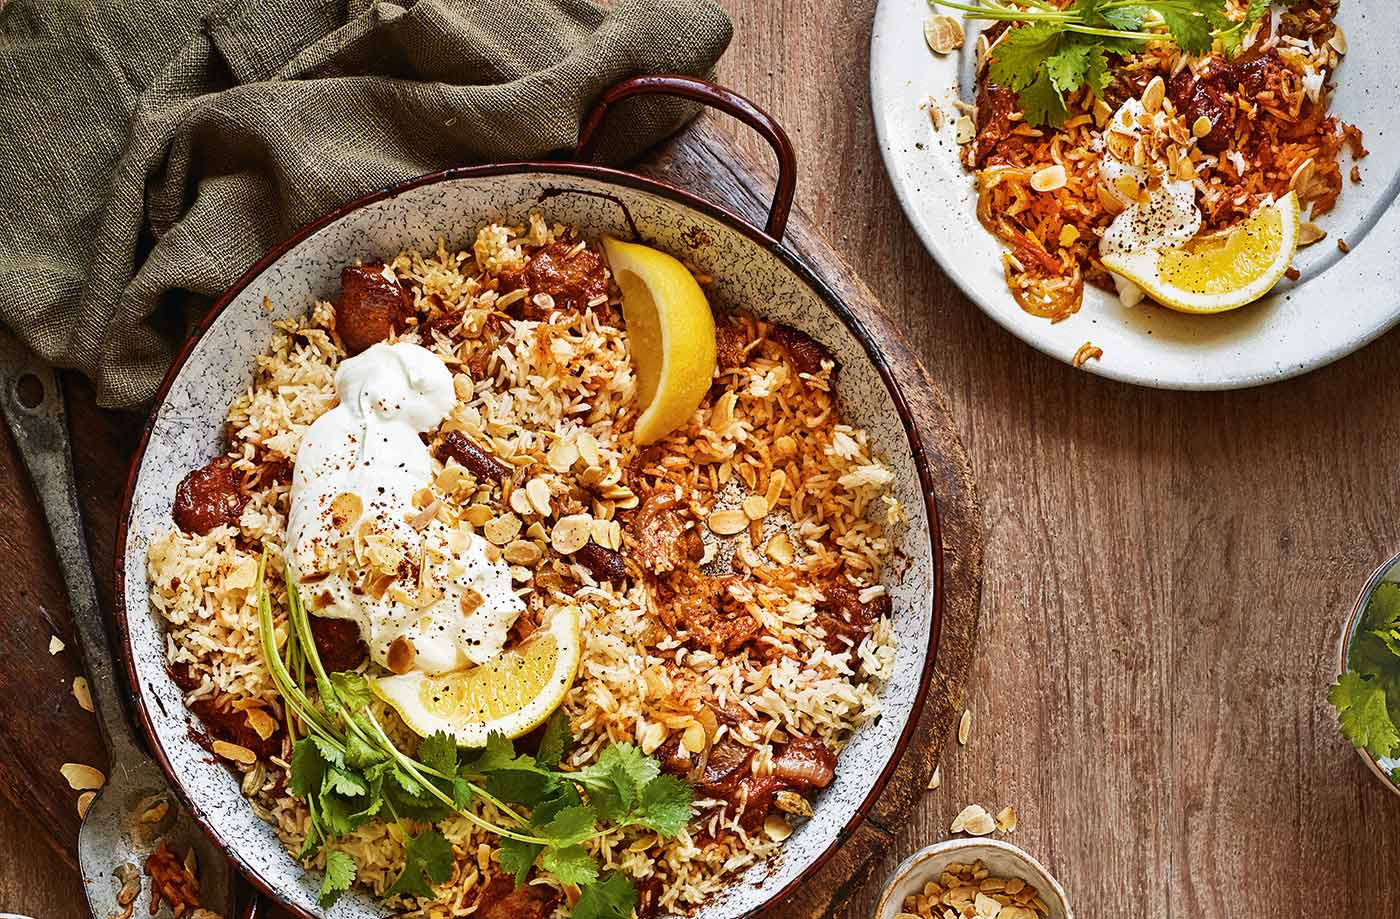 Lamb biryani bake recipe